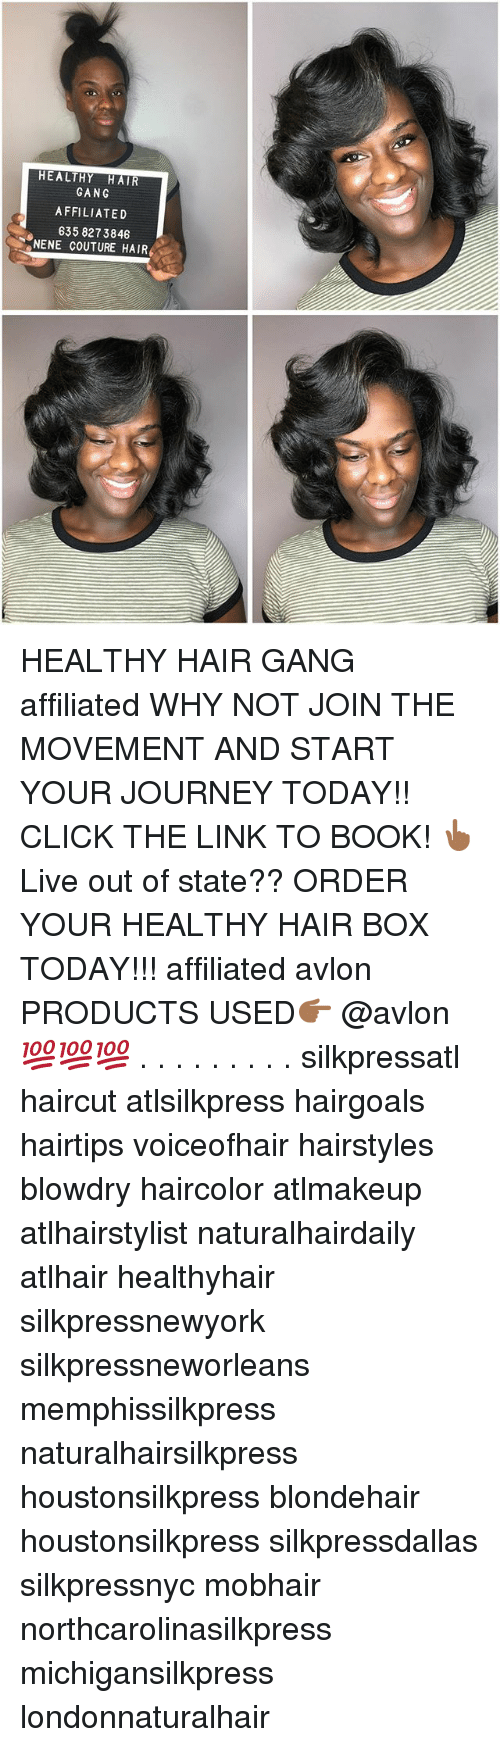 nene: HEALTHY HAIR  GANG  AFFILIATED  635 827 3846  NENE COUTURE HAIR HEALTHY HAIR GANG affiliated WHY NOT JOIN THE MOVEMENT AND START YOUR JOURNEY TODAY!! CLICK THE LINK TO BOOK! 👆🏾Live out of state?? ORDER YOUR HEALTHY HAIR BOX TODAY!!! affiliated avlon PRODUCTS USED👉🏾 @avlon 💯💯💯 . . . . . . . . . silkpressatl haircut atlsilkpress hairgoals hairtips voiceofhair hairstyles blowdry haircolor atlmakeup atlhairstylist naturalhairdaily atlhair healthyhair silkpressnewyork silkpressneworleans memphissilkpress naturalhairsilkpress houstonsilkpress blondehair houstonsilkpress silkpressdallas silkpressnyc mobhair northcarolinasilkpress michigansilkpress londonnaturalhair